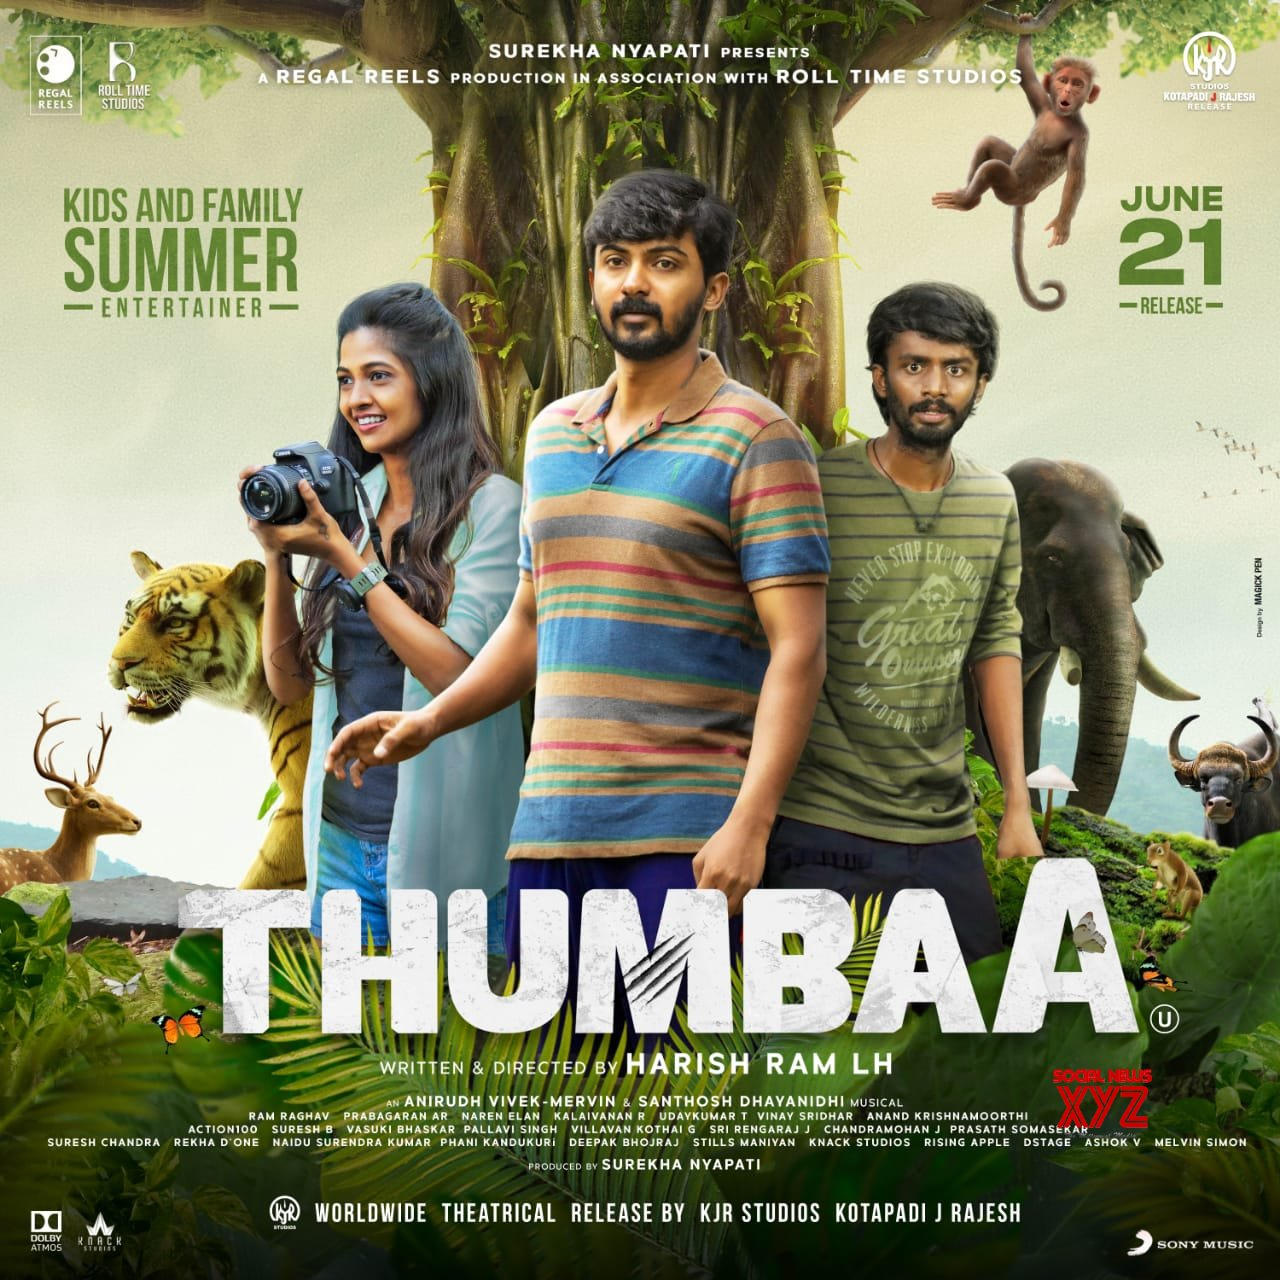 Thumbaa Movie To Release On June 21st Poster